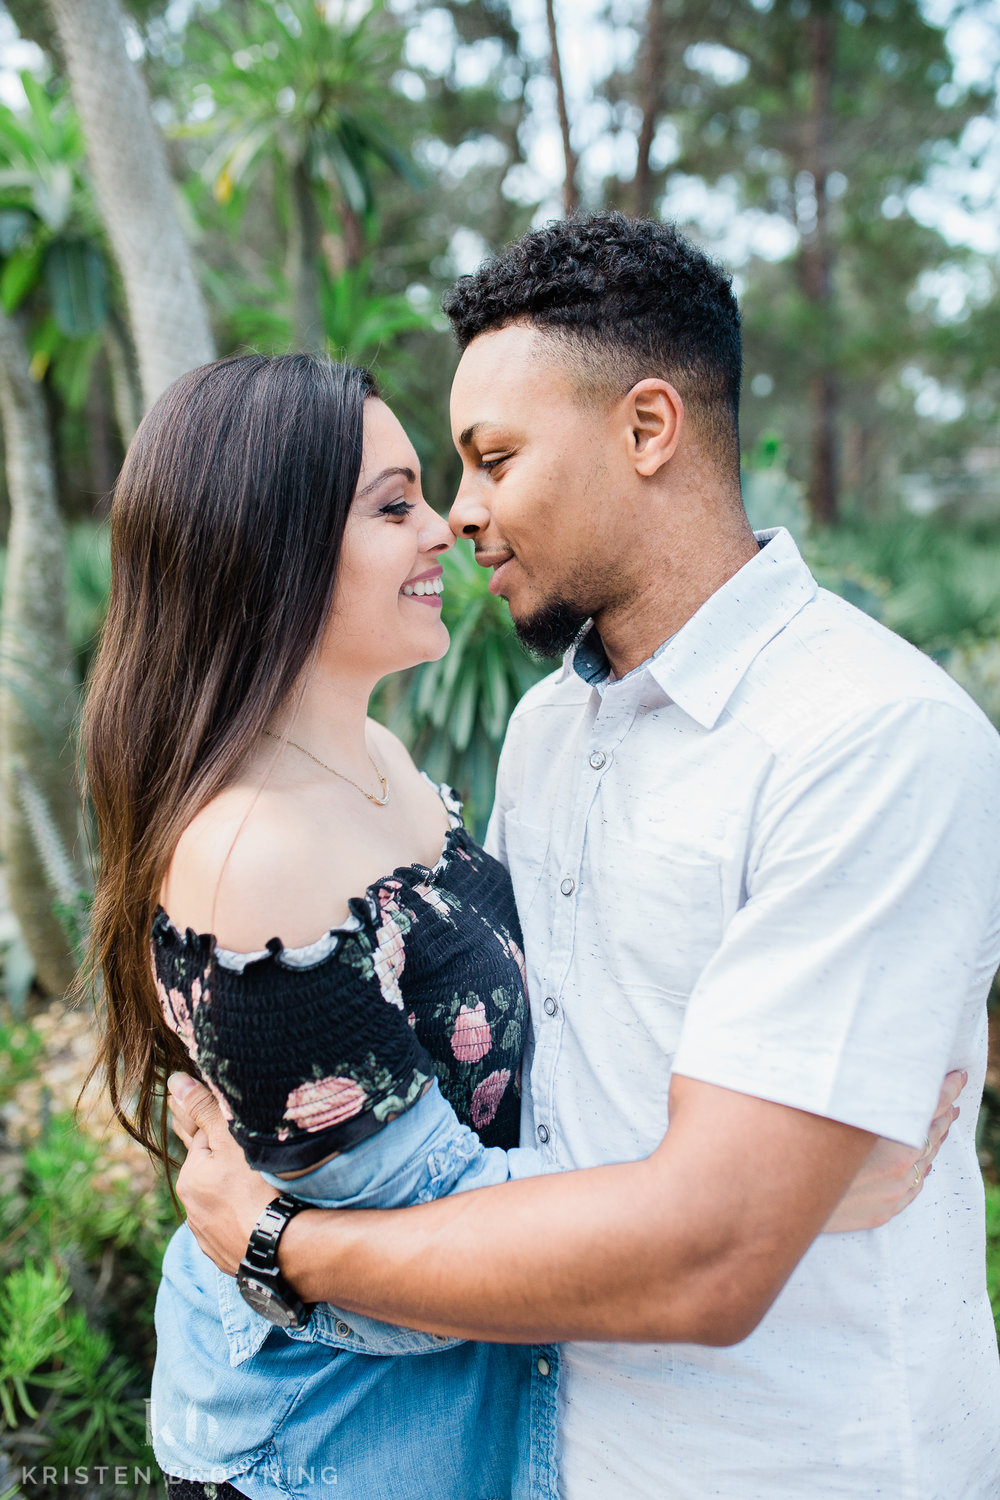 Engagement photo forehead to forehead in the cactus garden at PSL Botanical Gardens